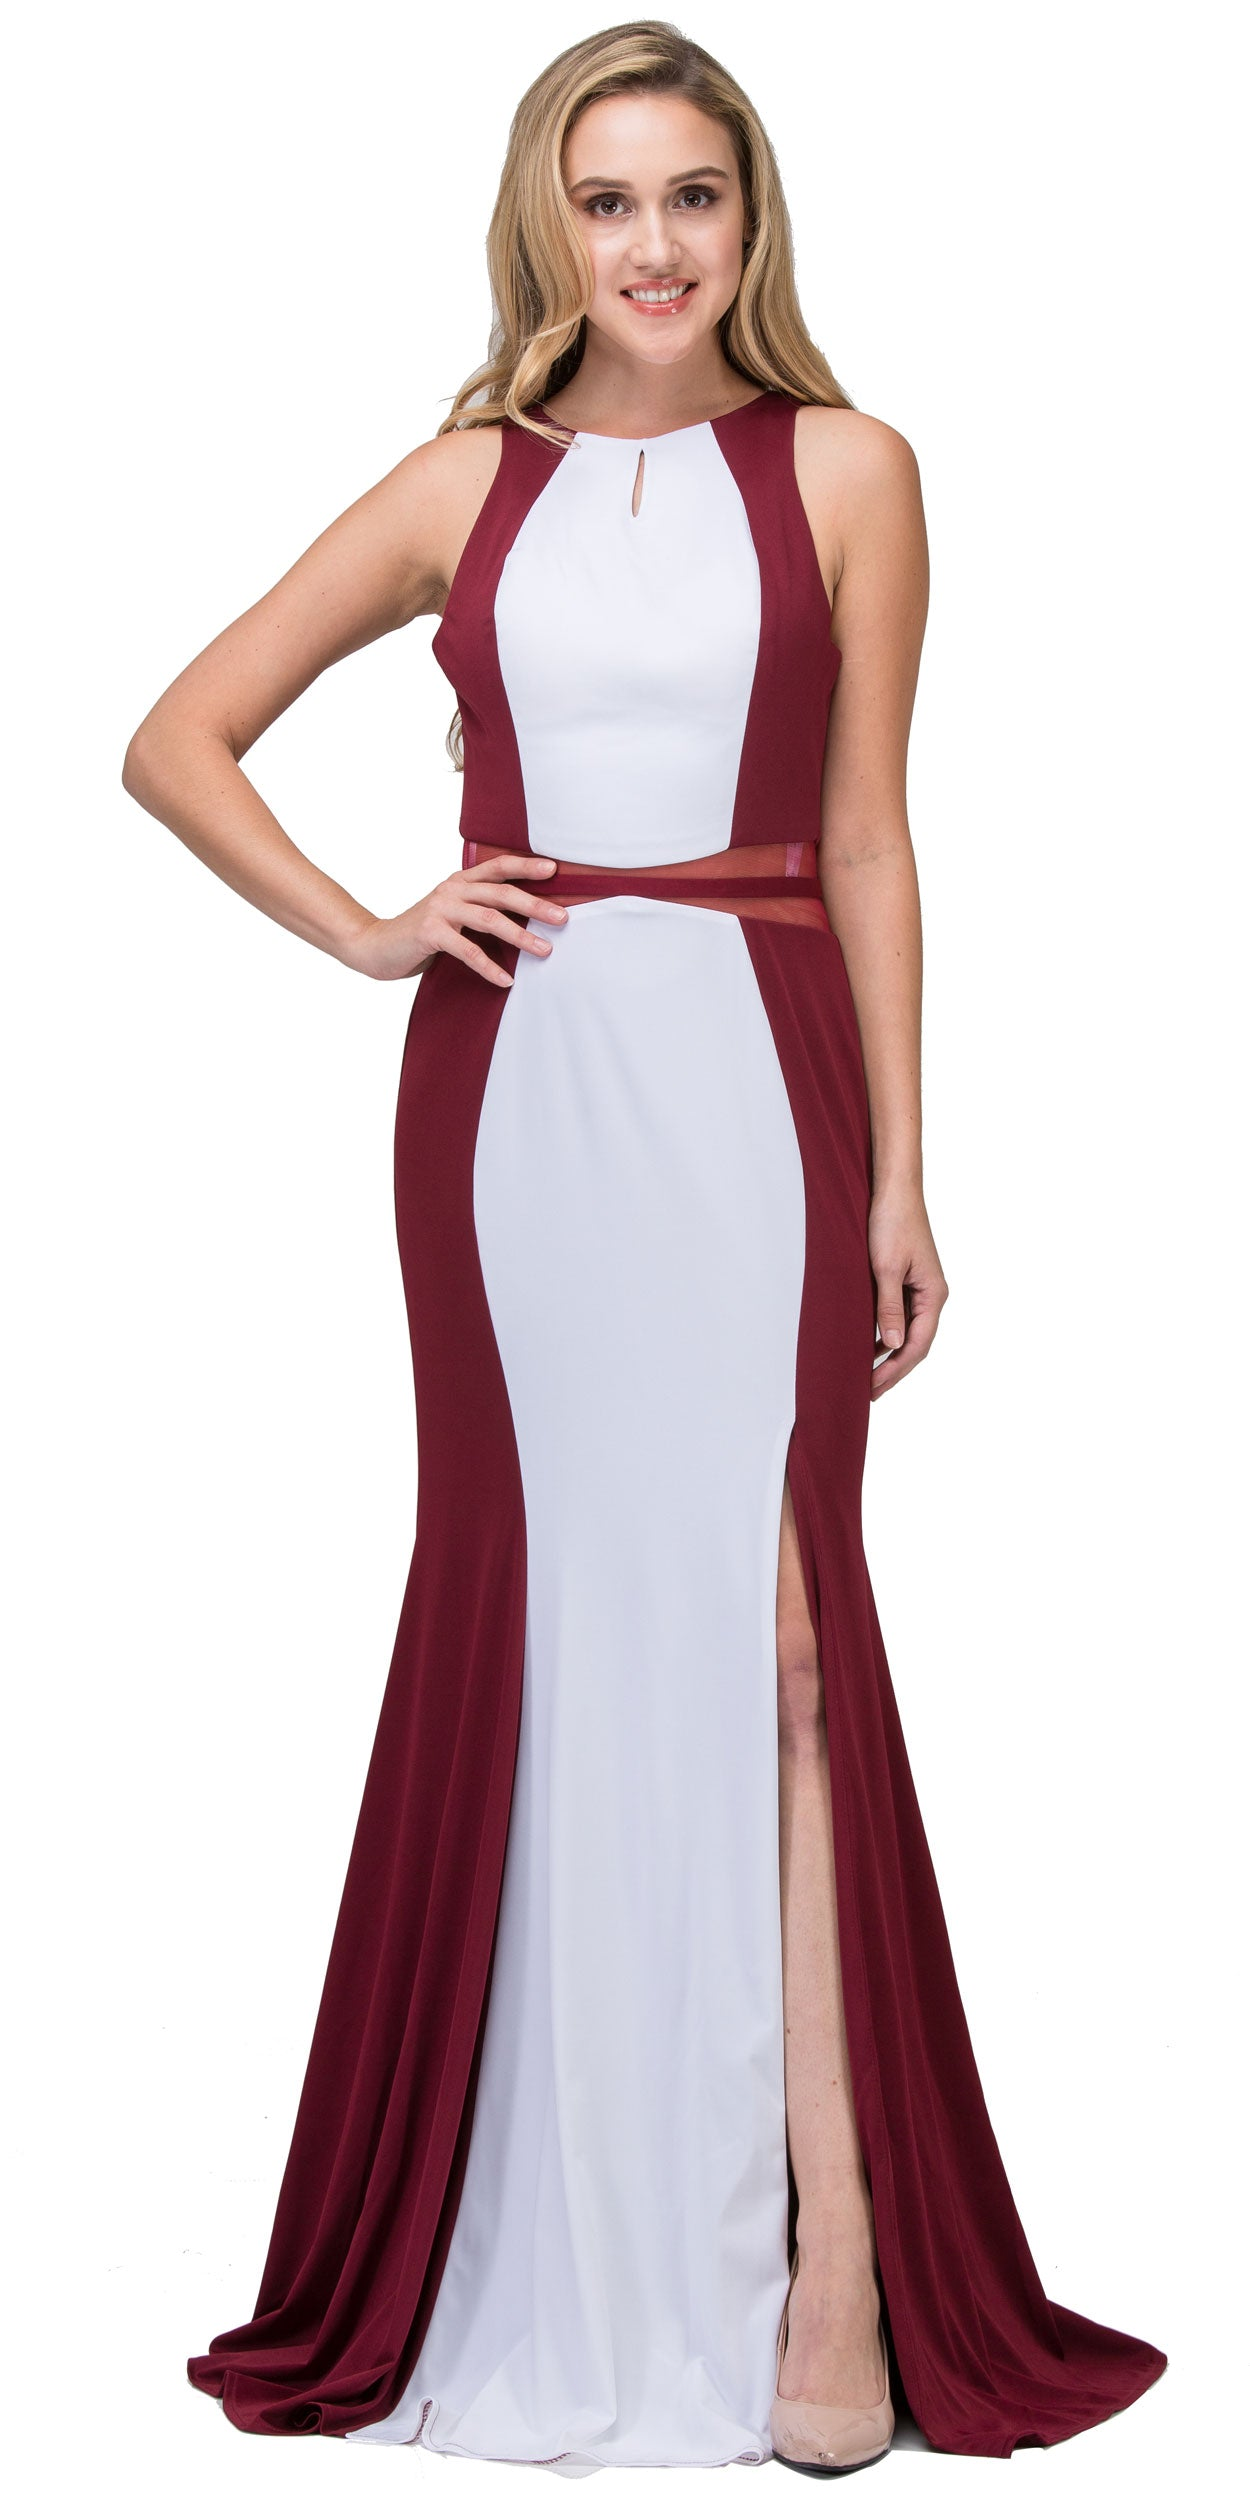 Image of High Neck Color Block Mesh Insert Long Formal Evening Dress in Burgundy/White